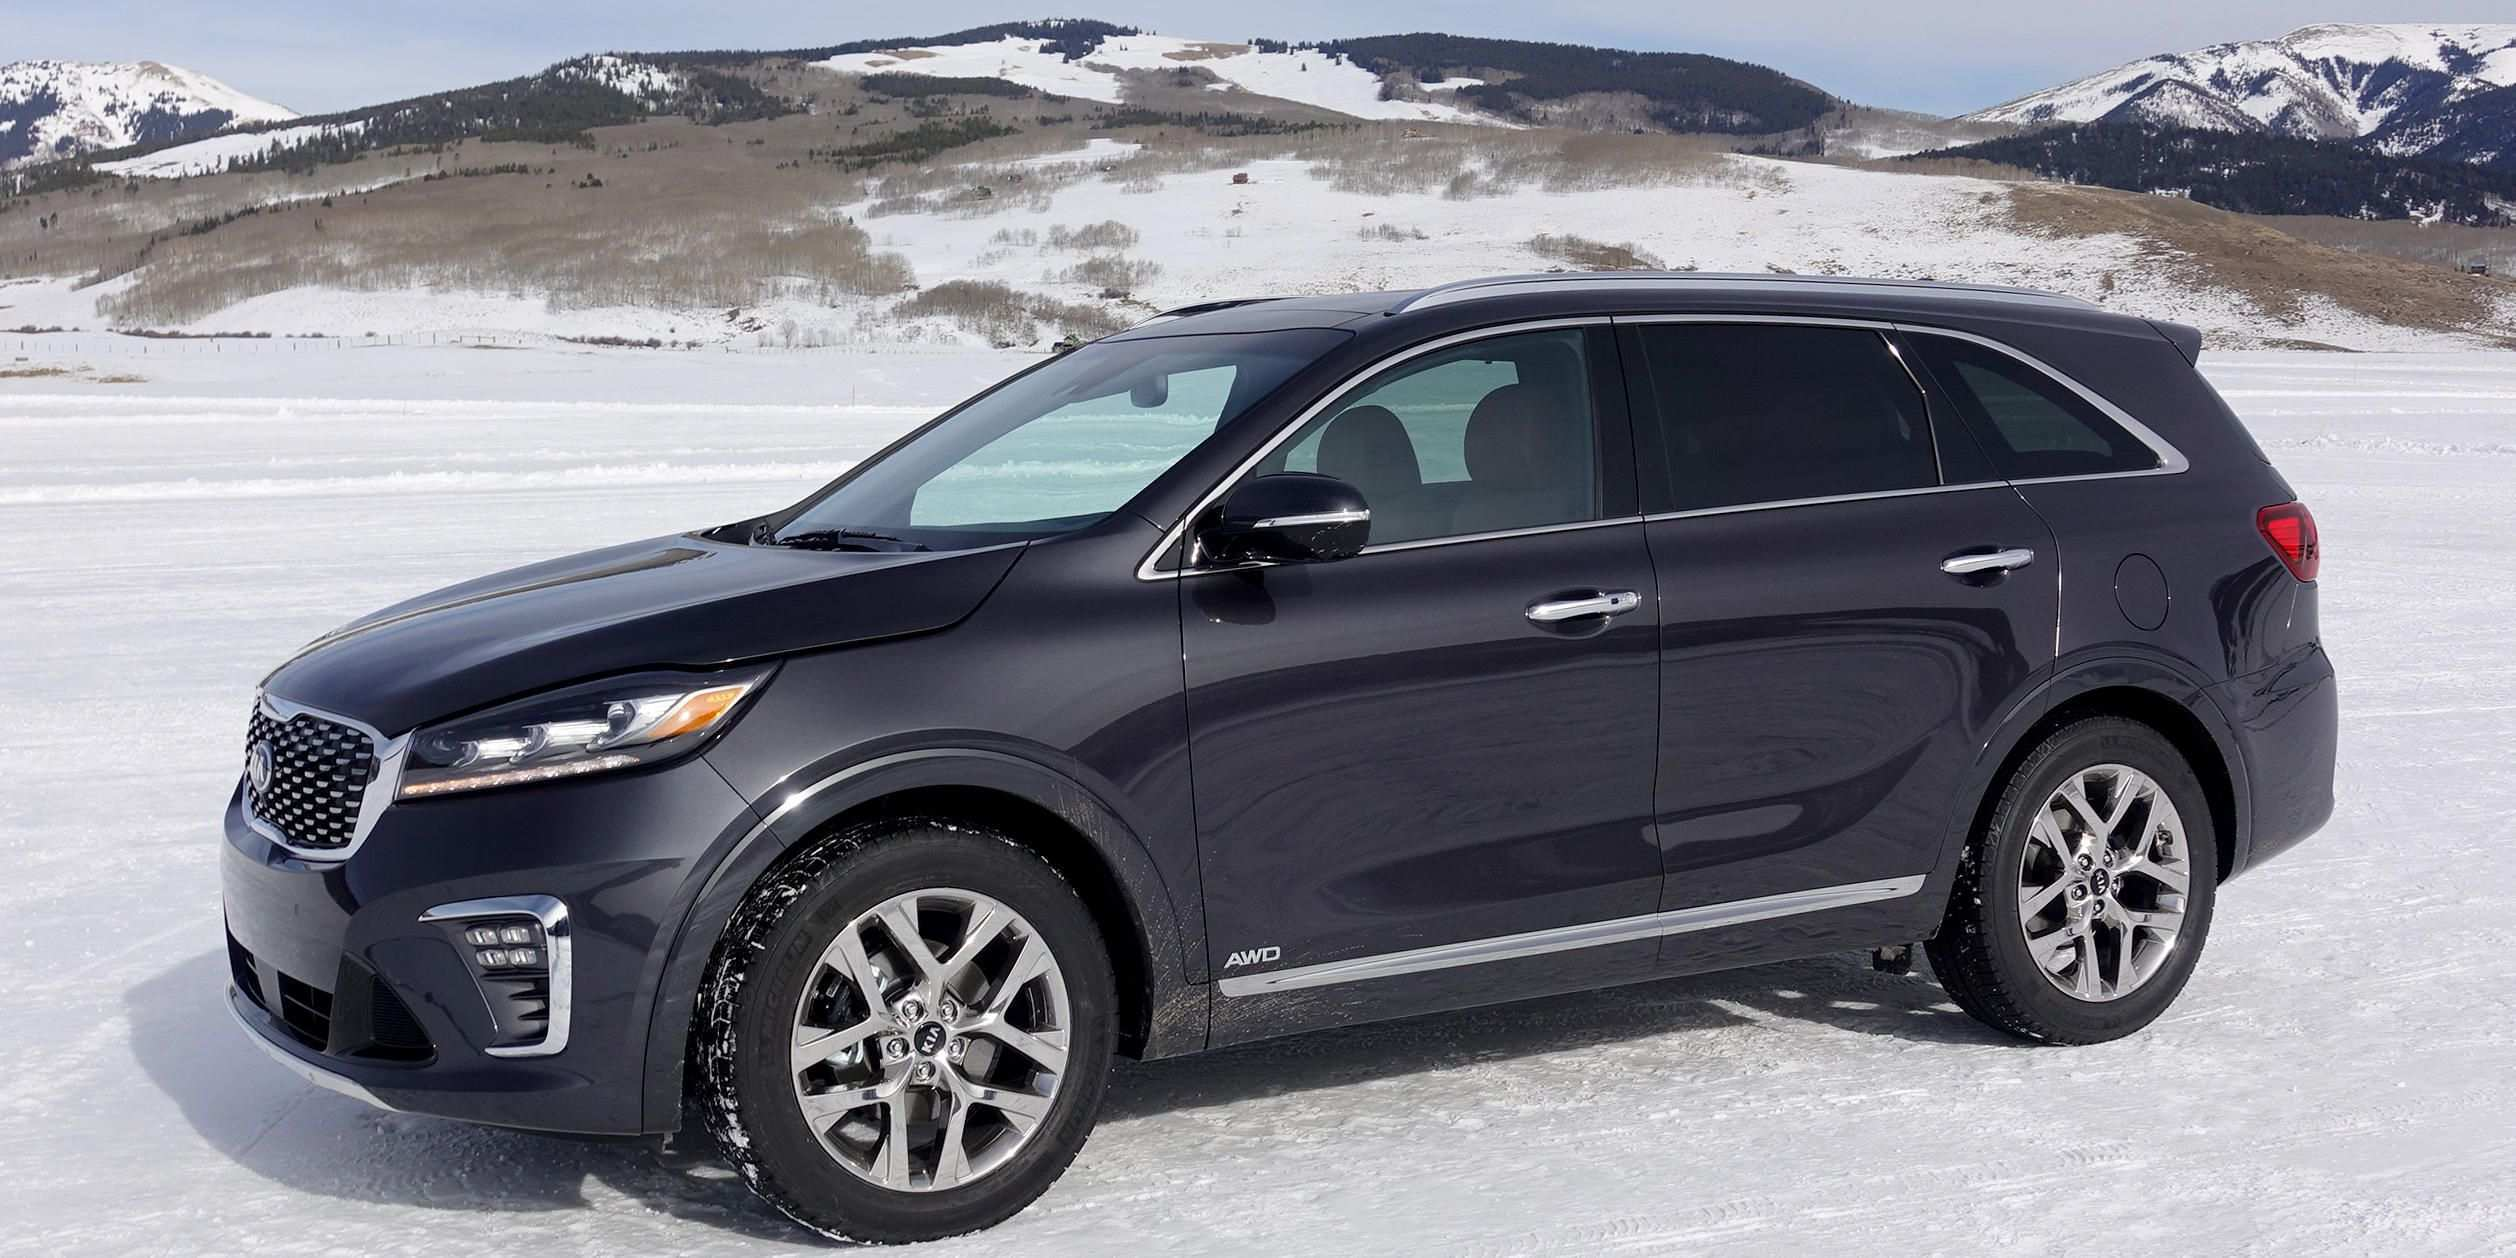 30 The Best 2019 Kia Sorento Review Images